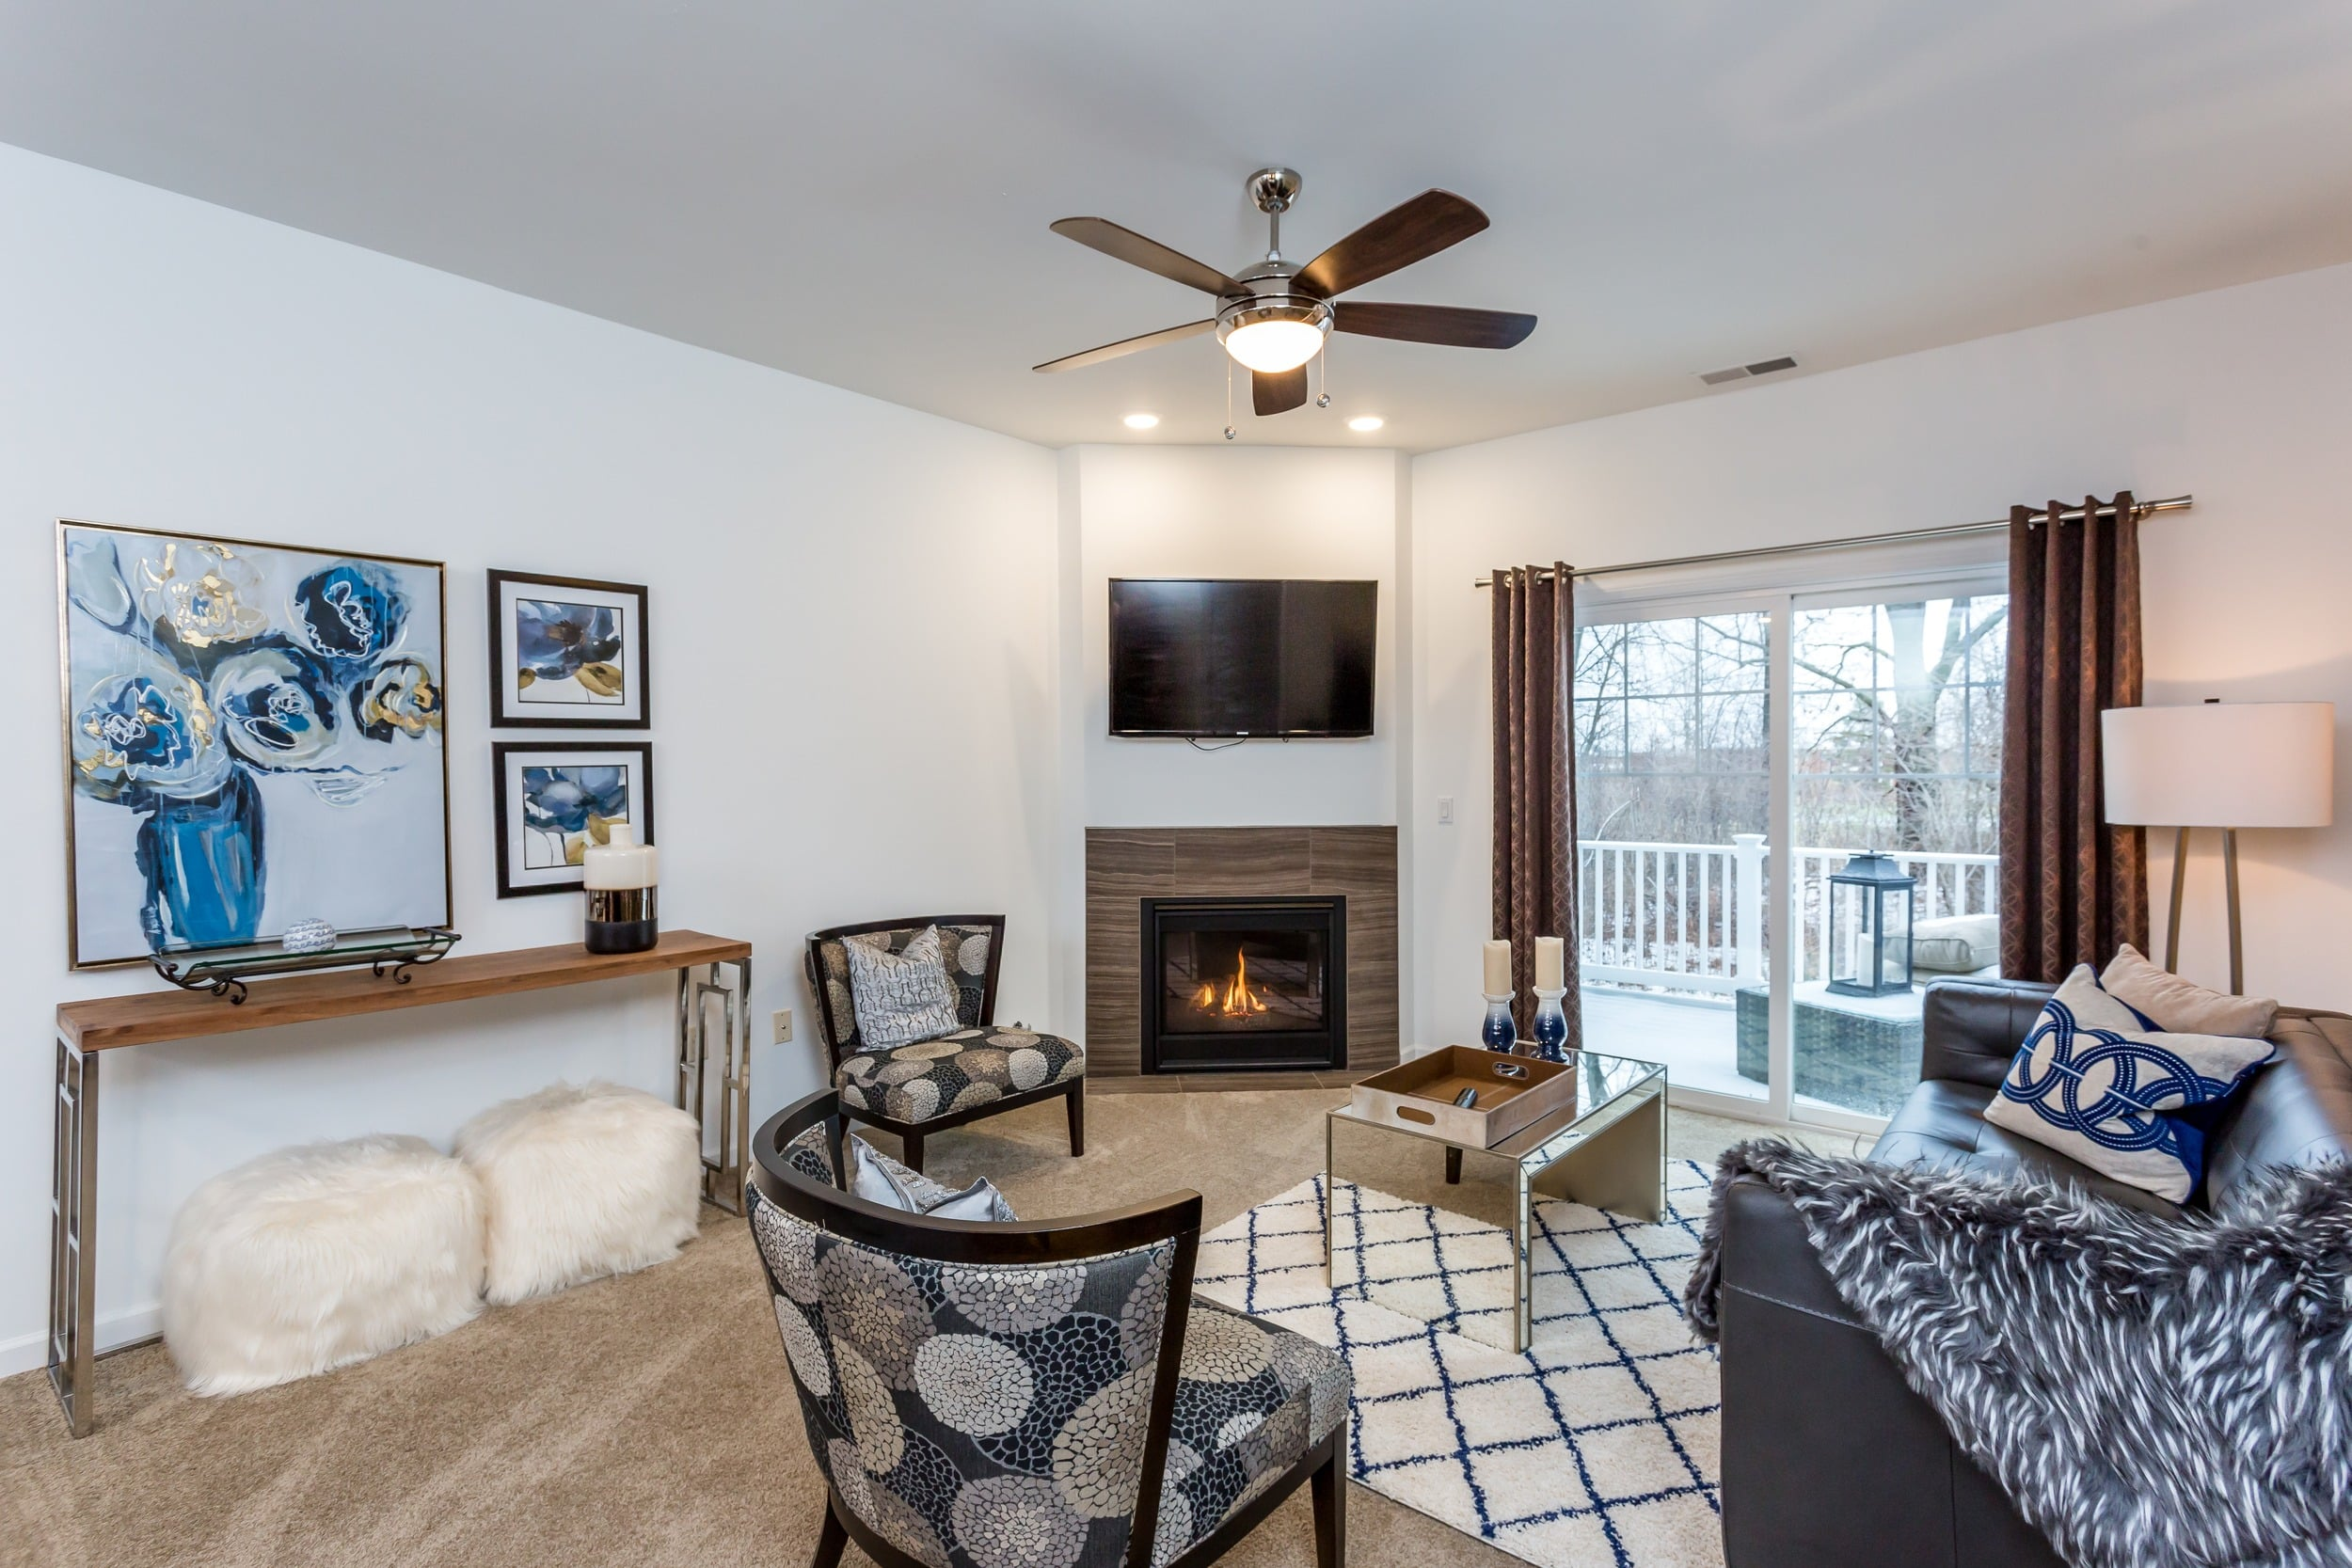 Living room with a cozy fireplace at The Links at CenterPointe Townhomes in Canandaigua, NY